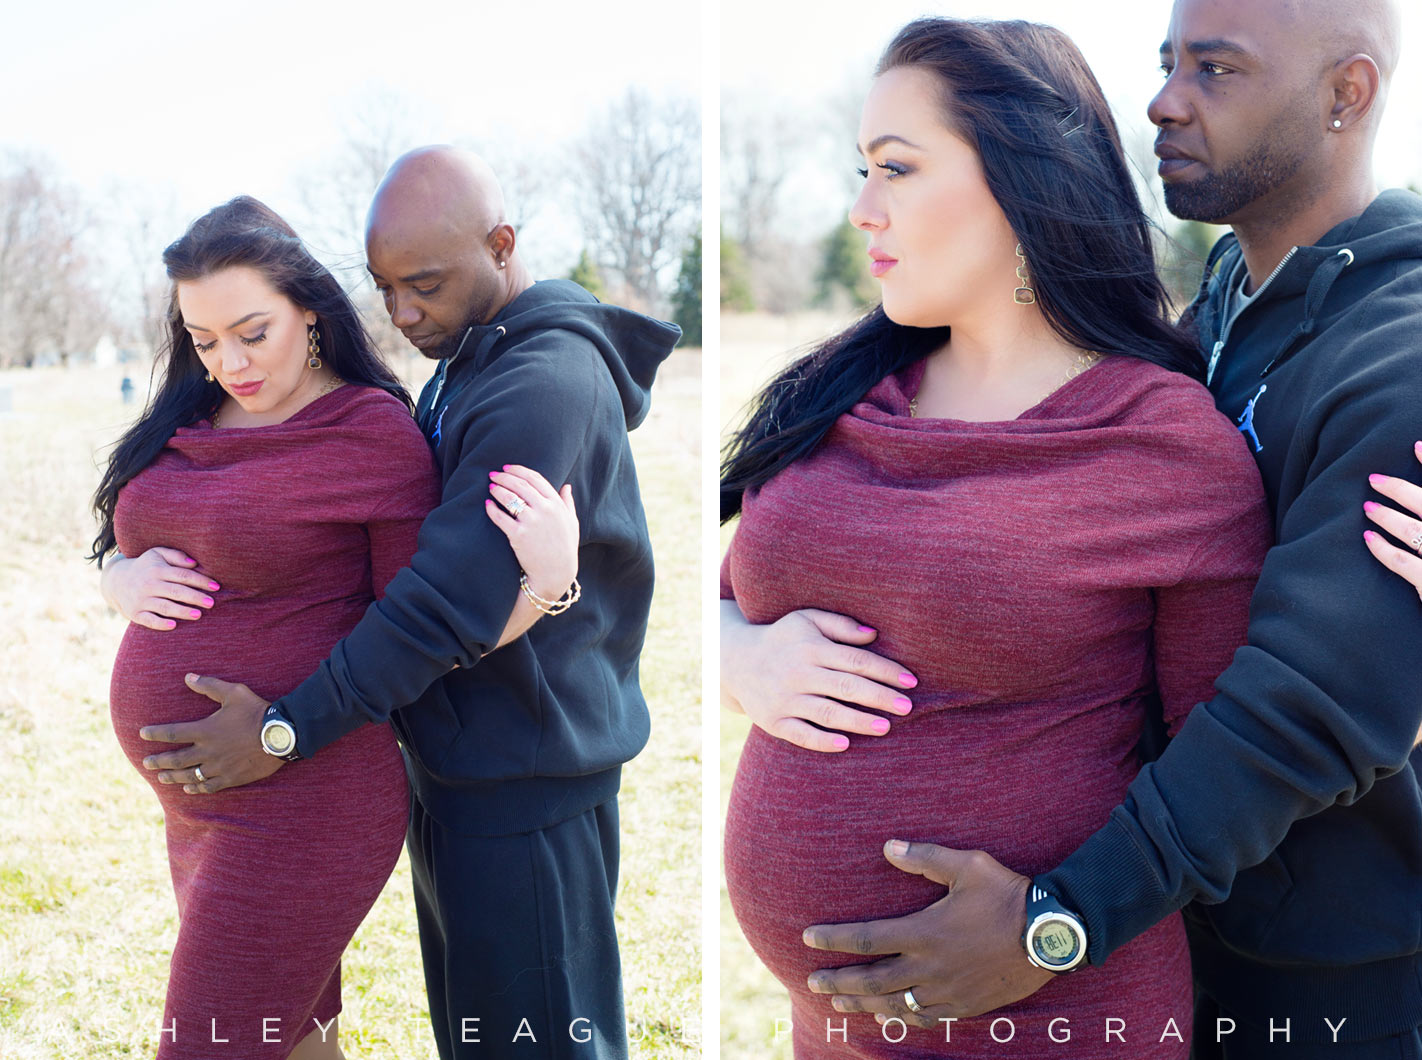 New Bremen Photography Maternity Portrait Baby Bump